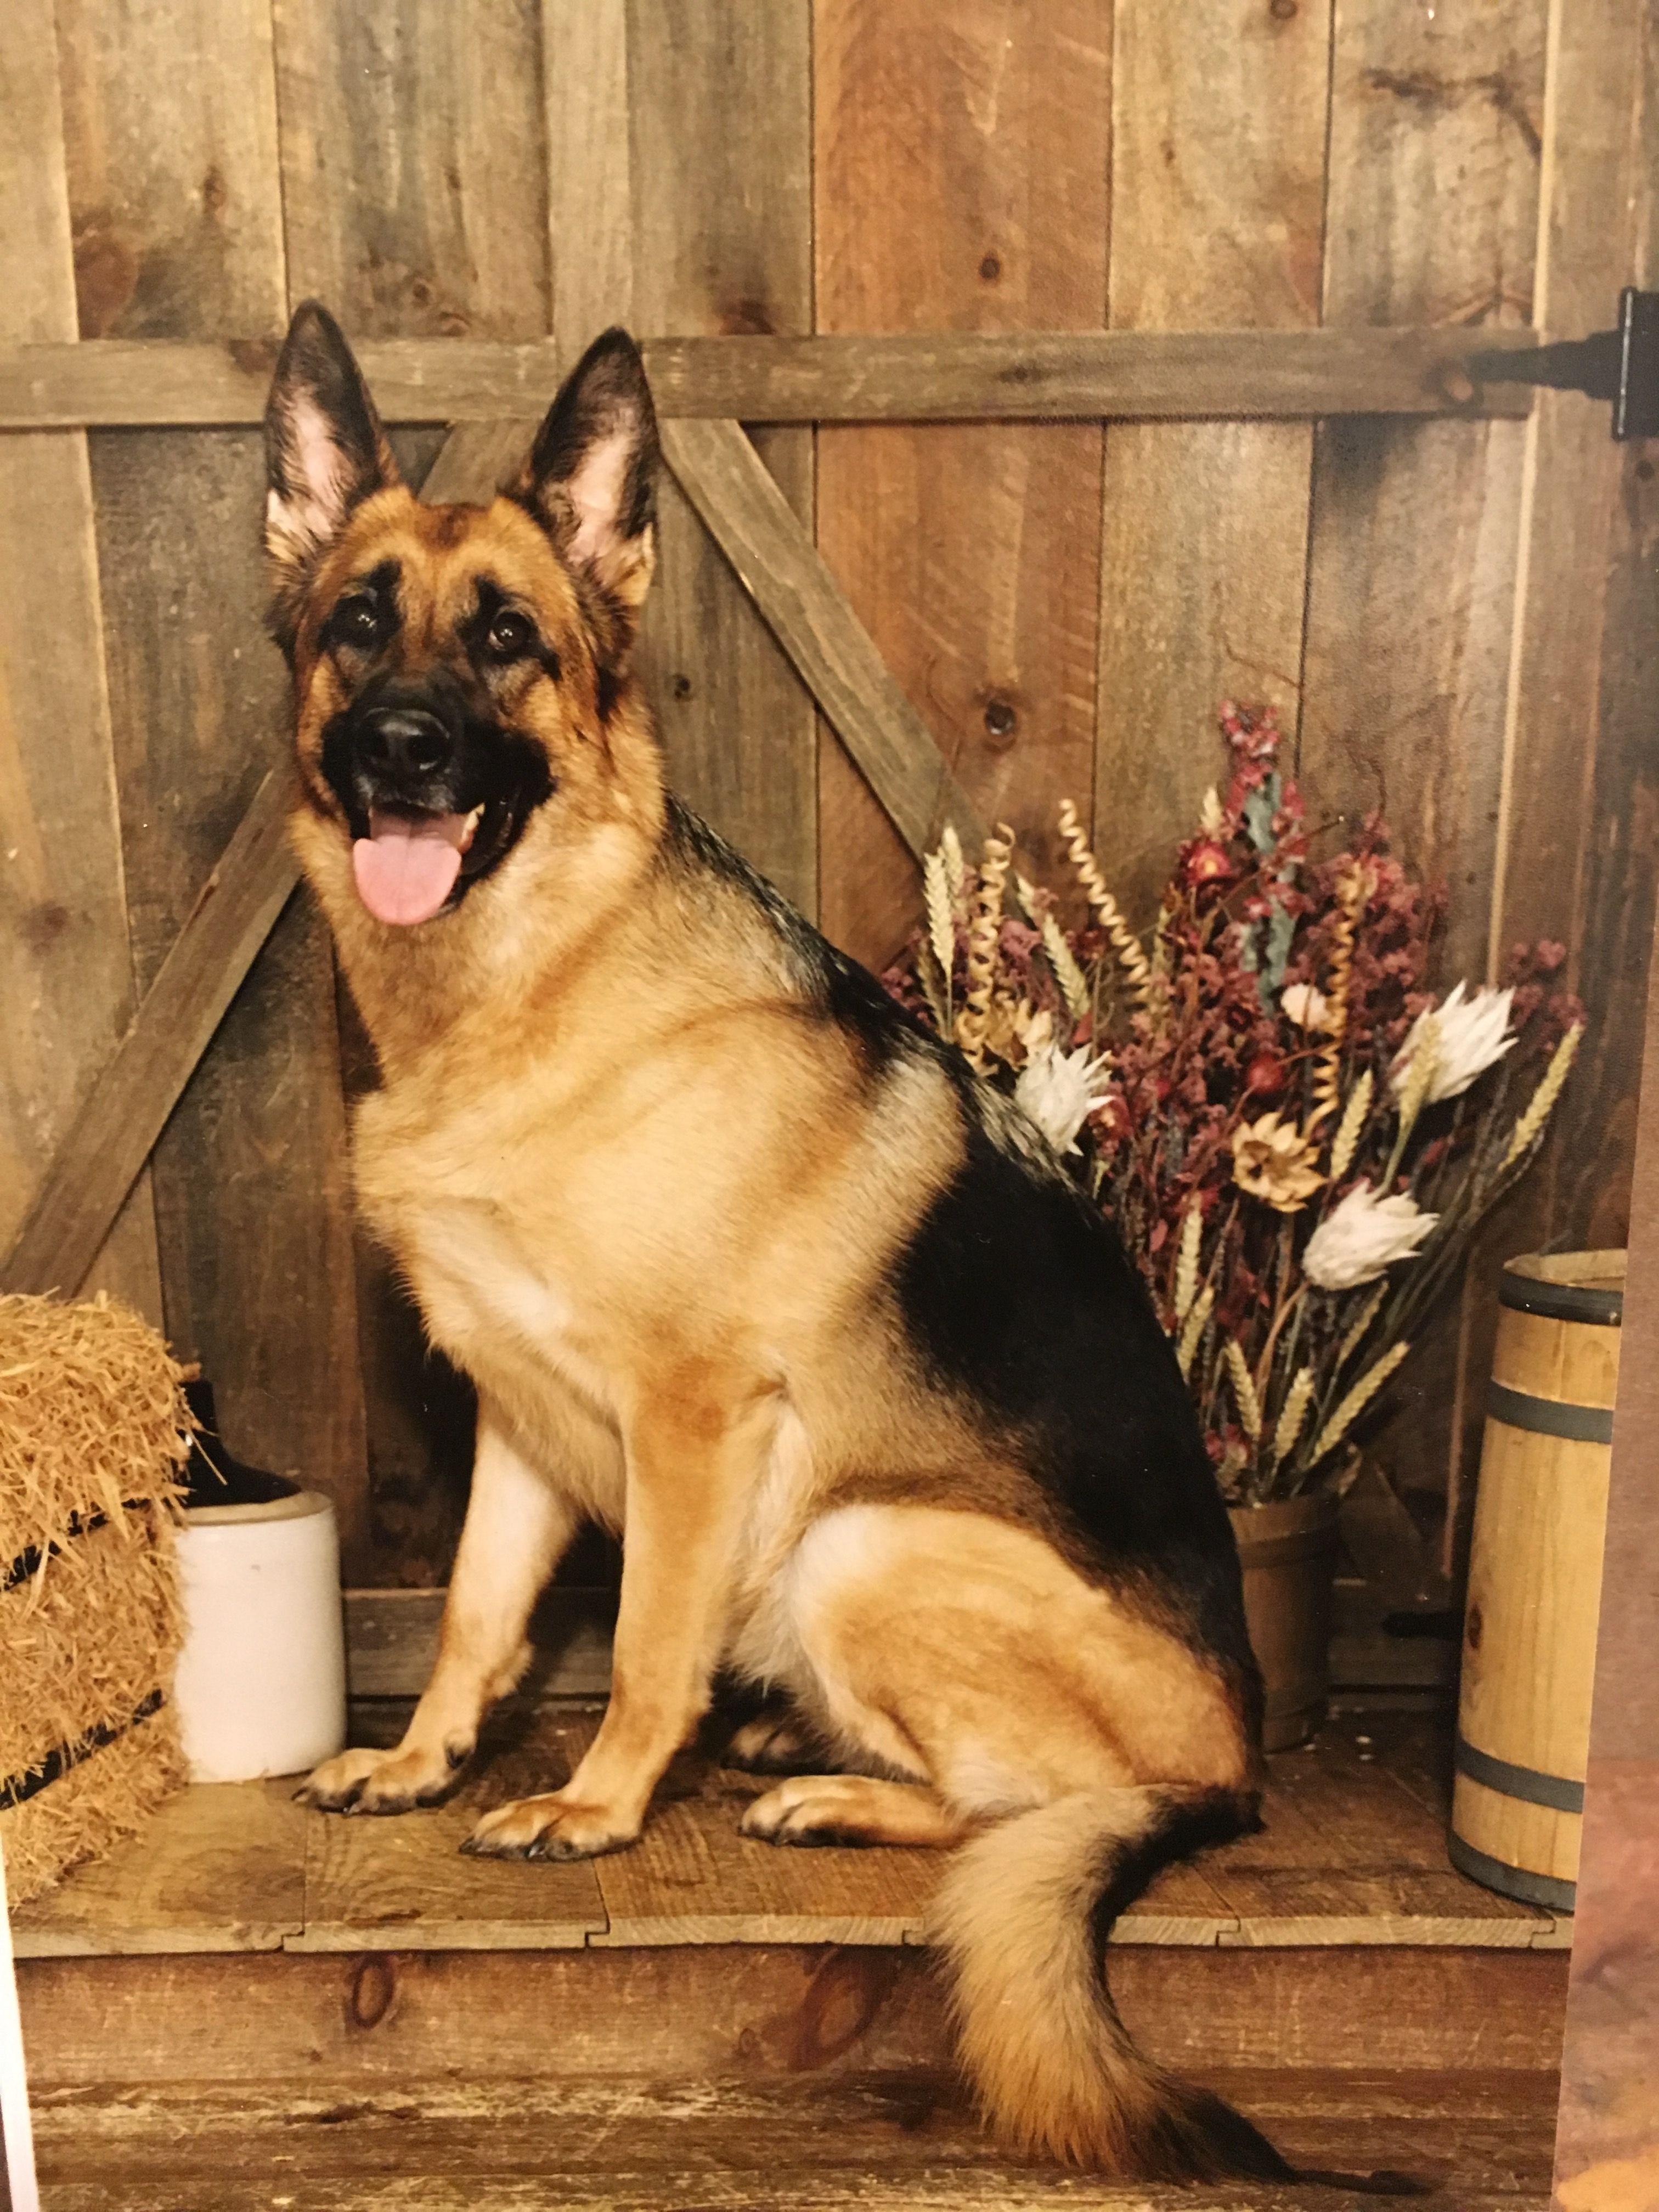 My First Gsd Kiri One Of The Greatest Dogs I Ve Ever Owned